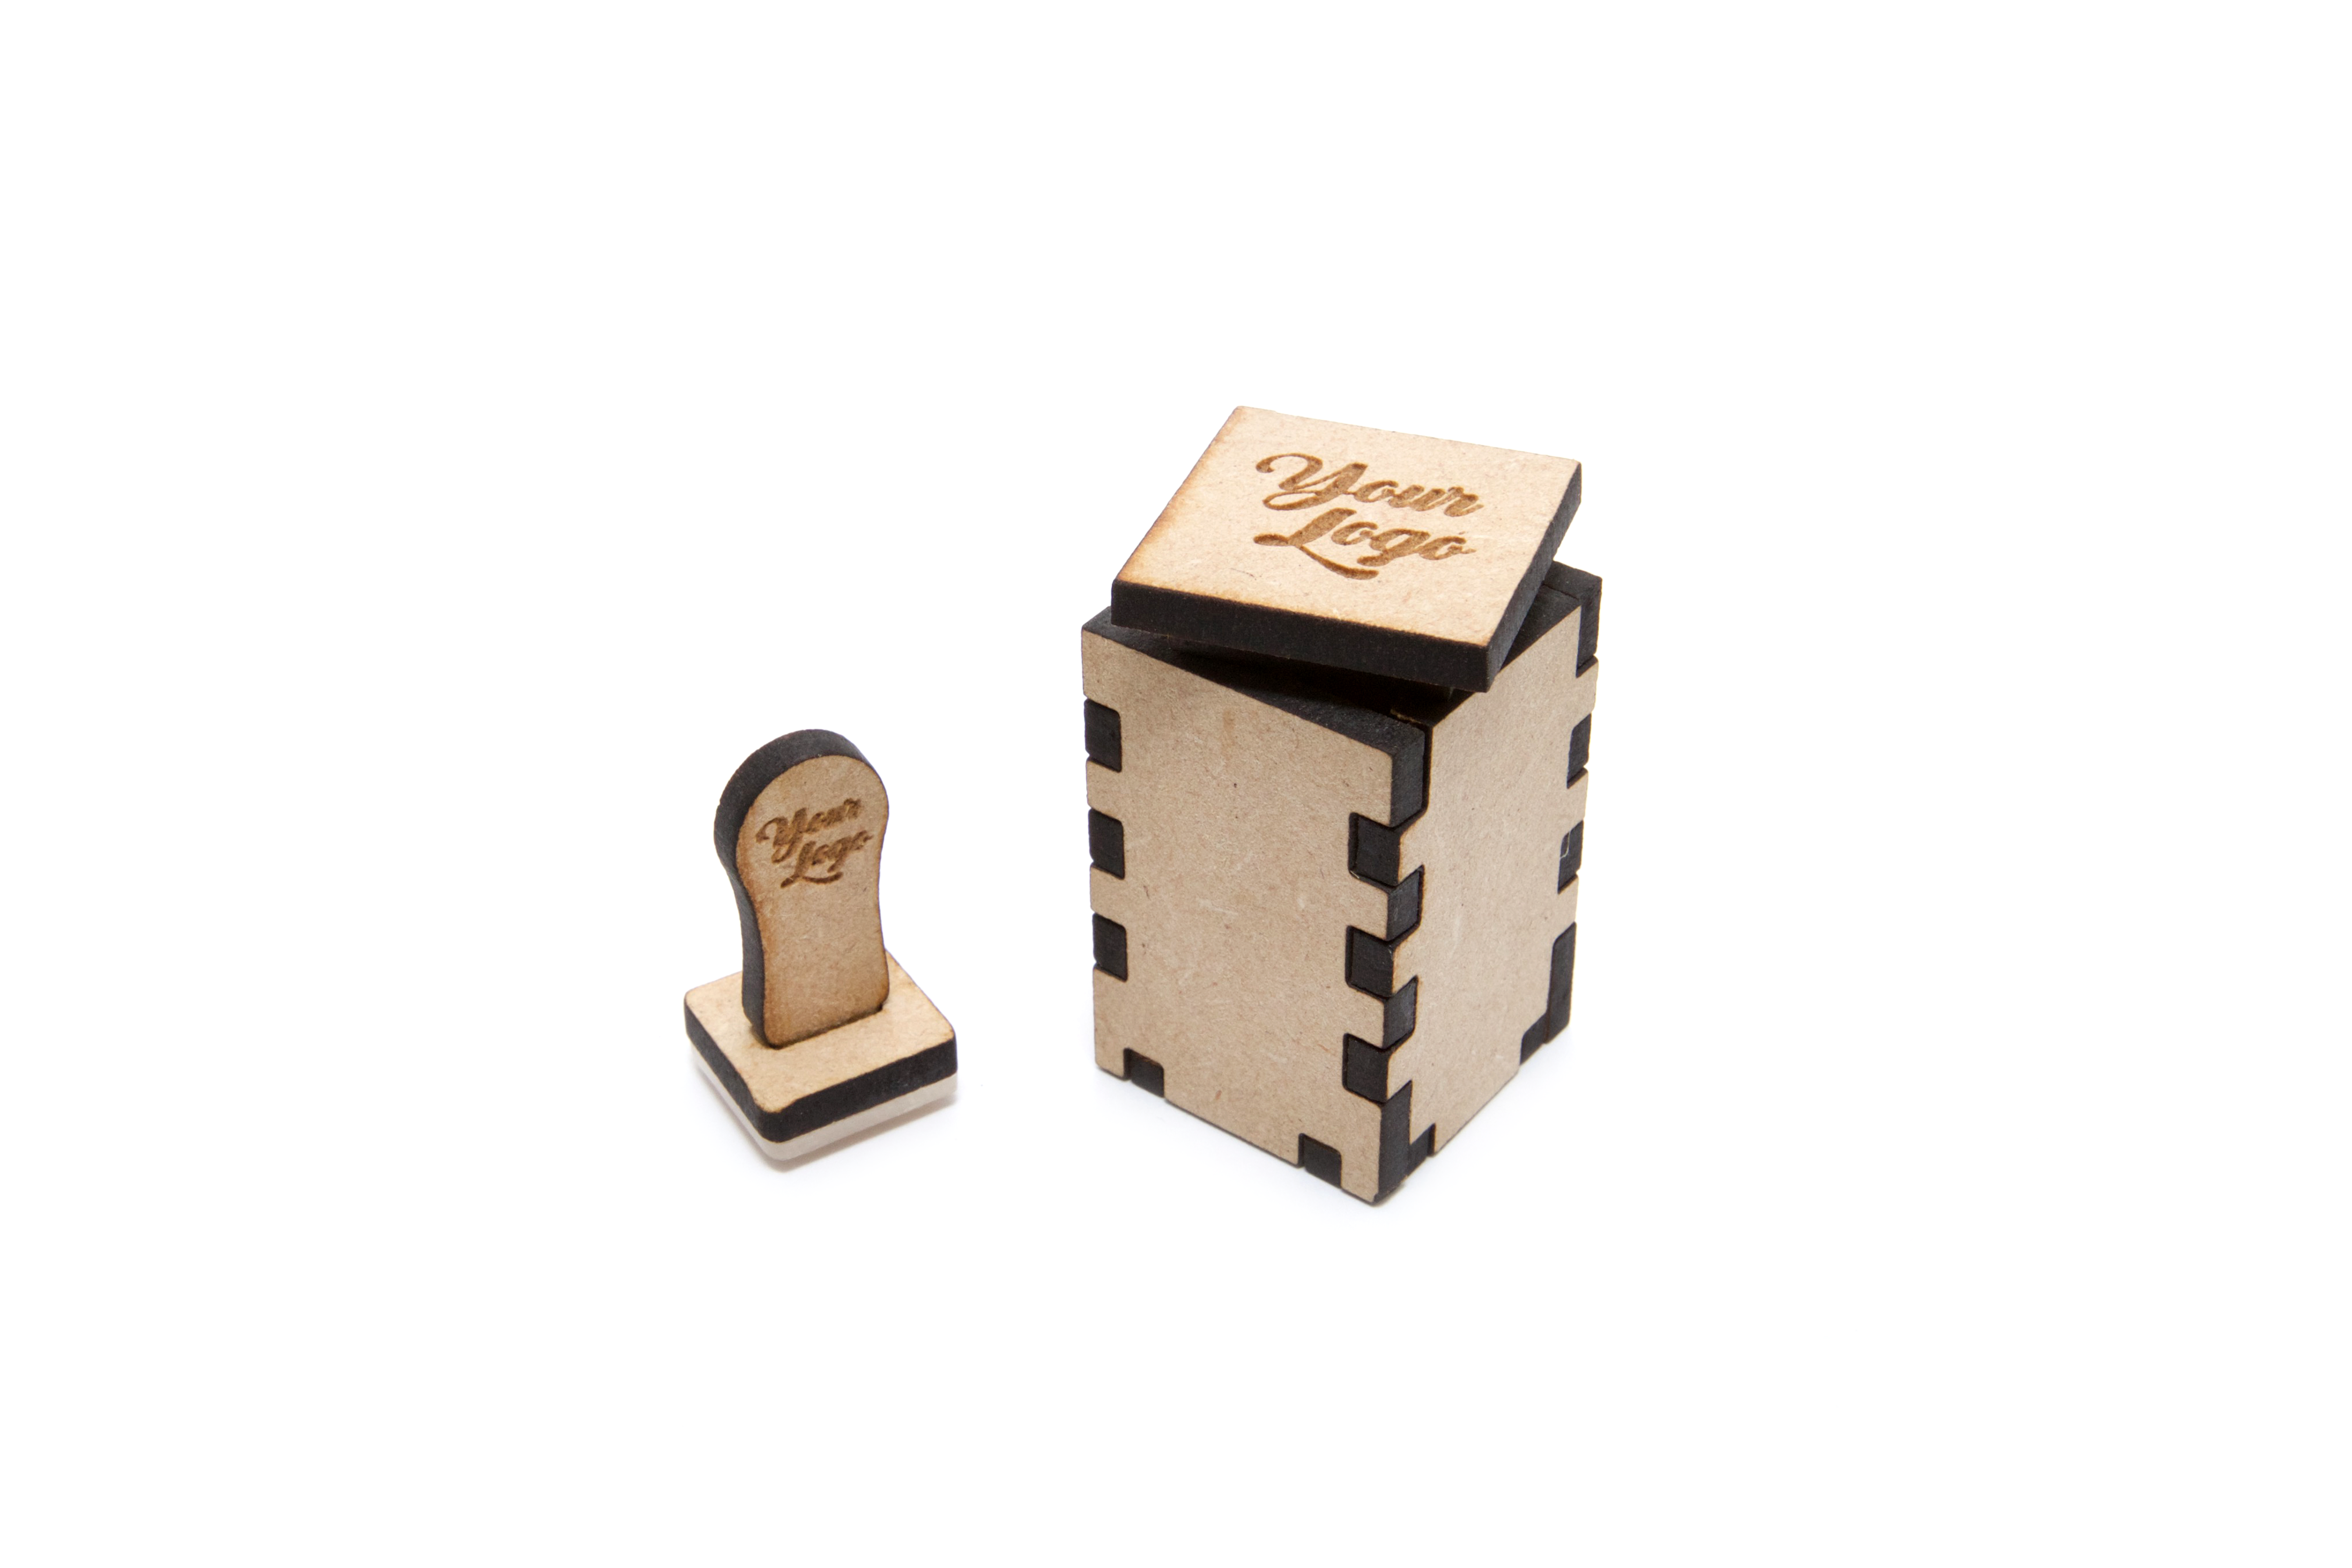 yourlogo-personalised-stamp-sample-open-box.png